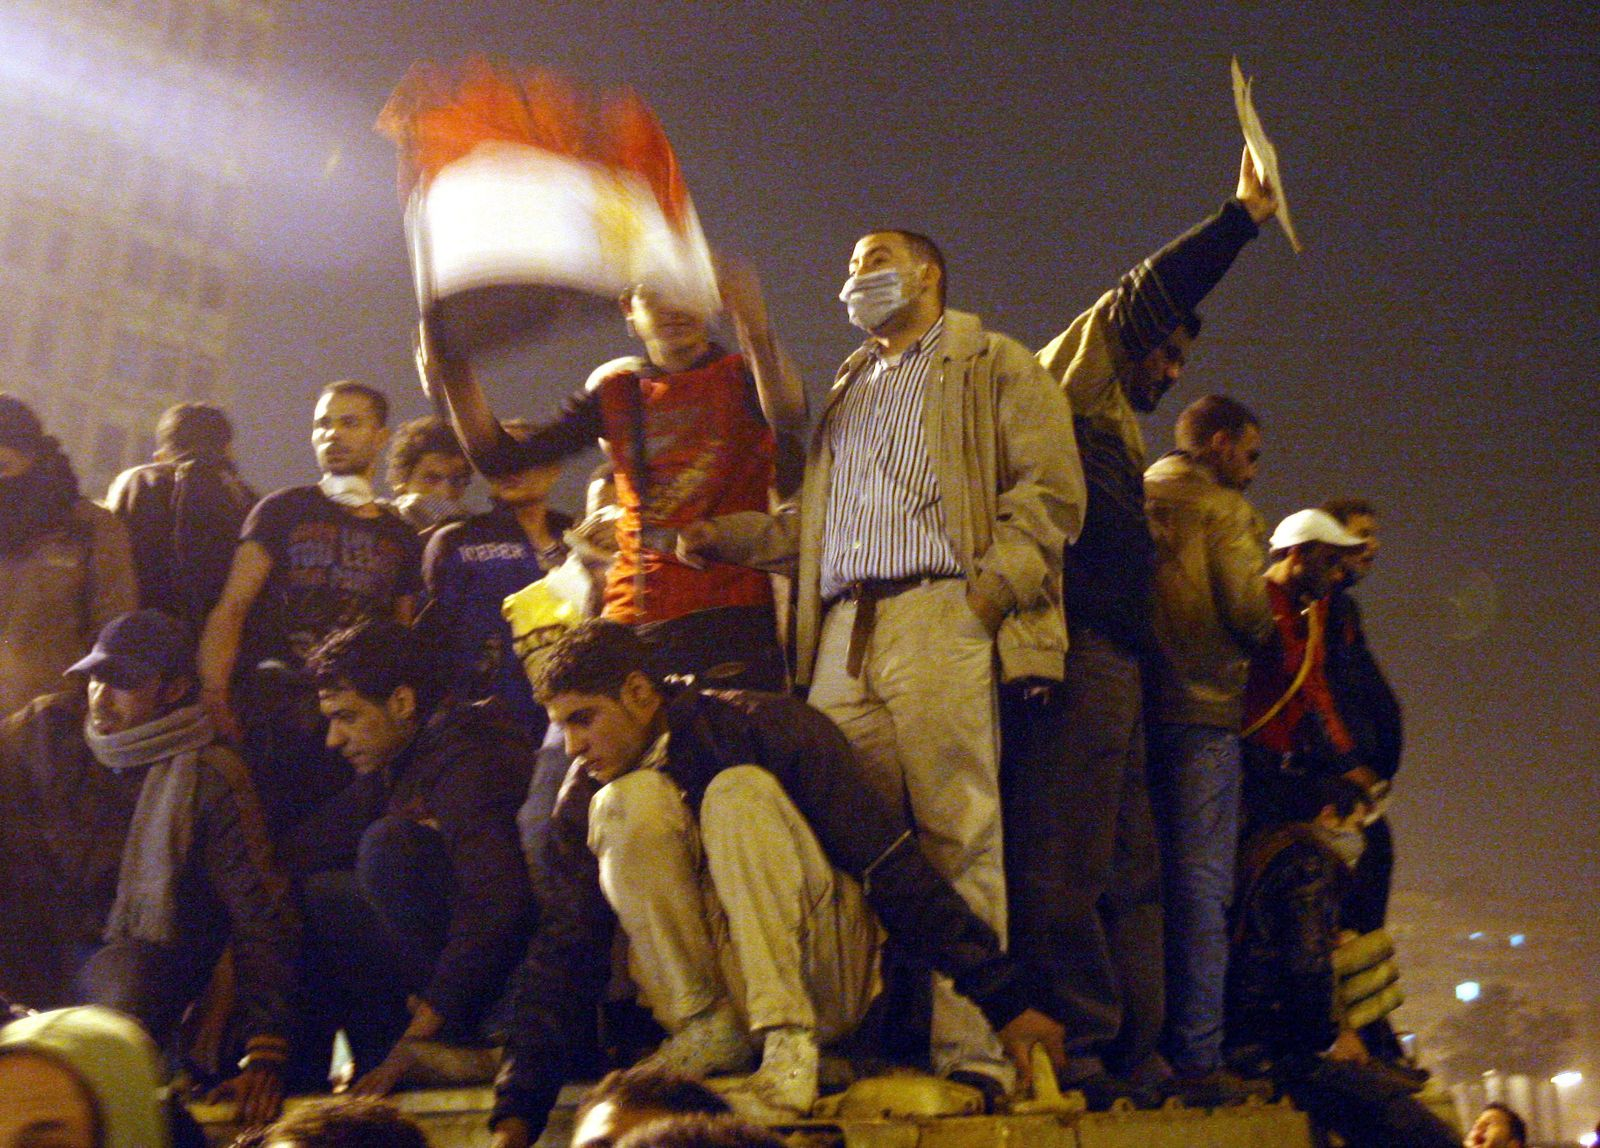 Egypt under curfew - barrikadenbild